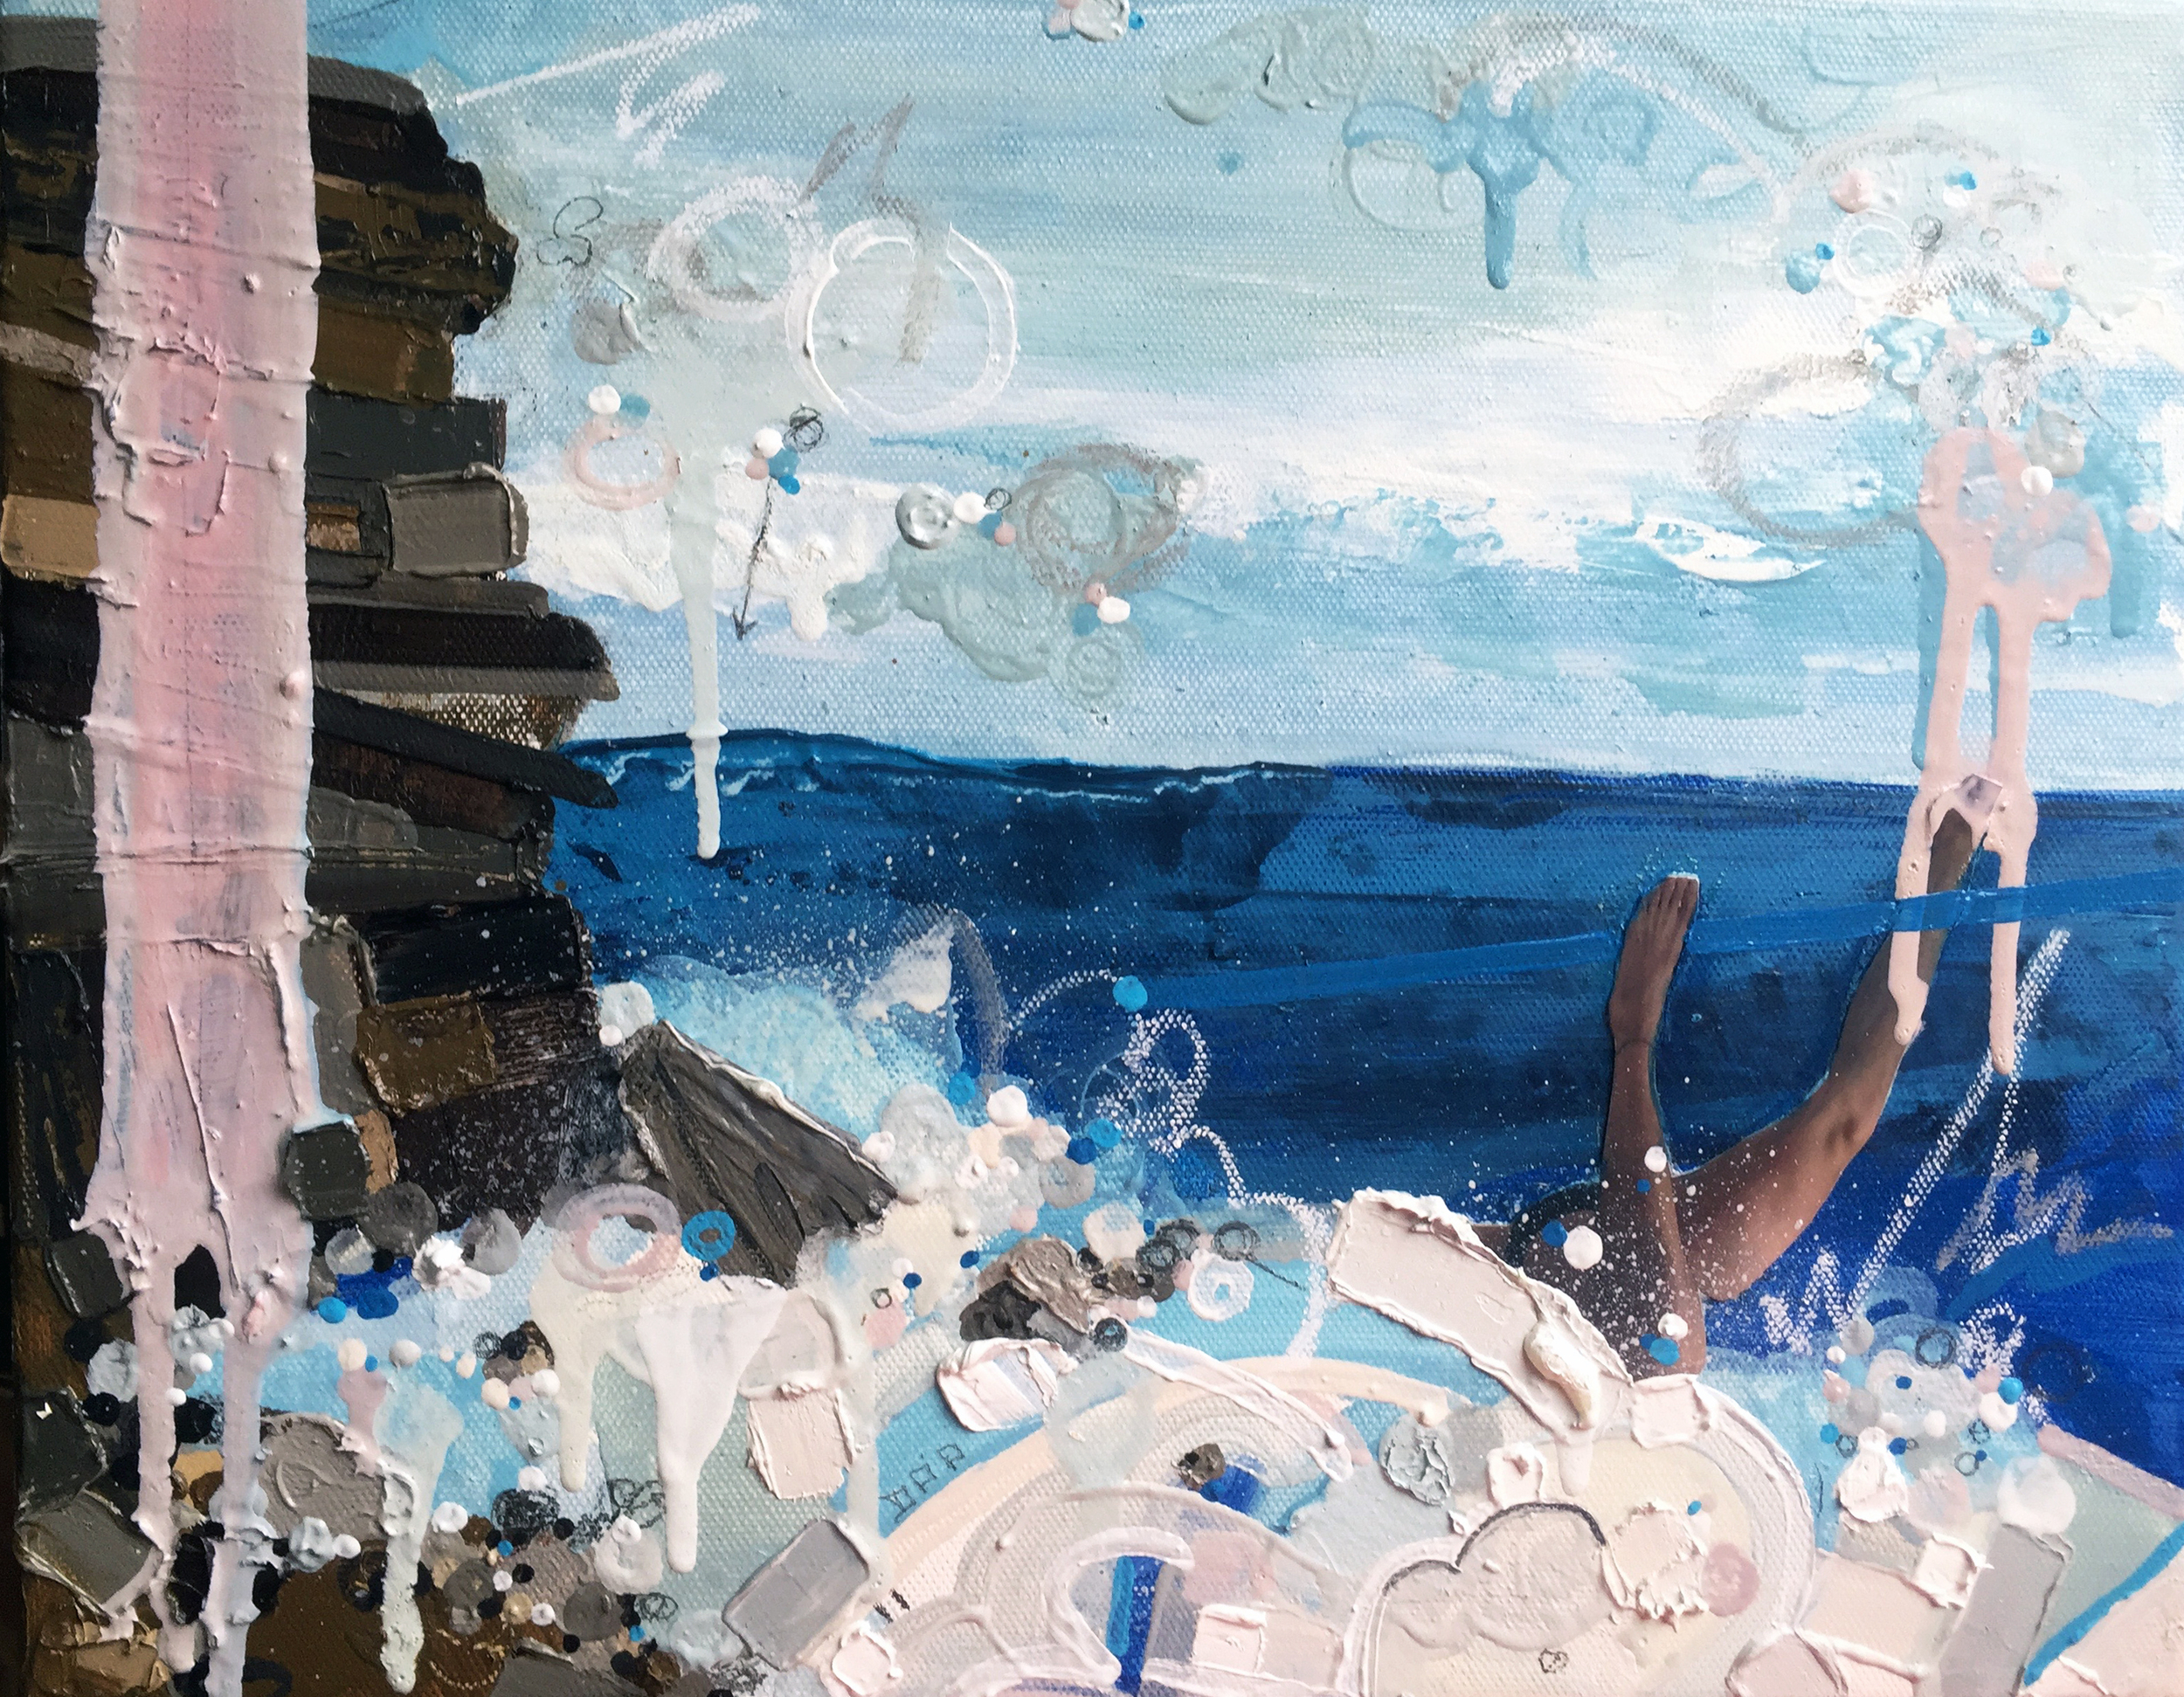 Sea View, 2016, Oil and Mixed Media on canvas, 9 x 12 inches